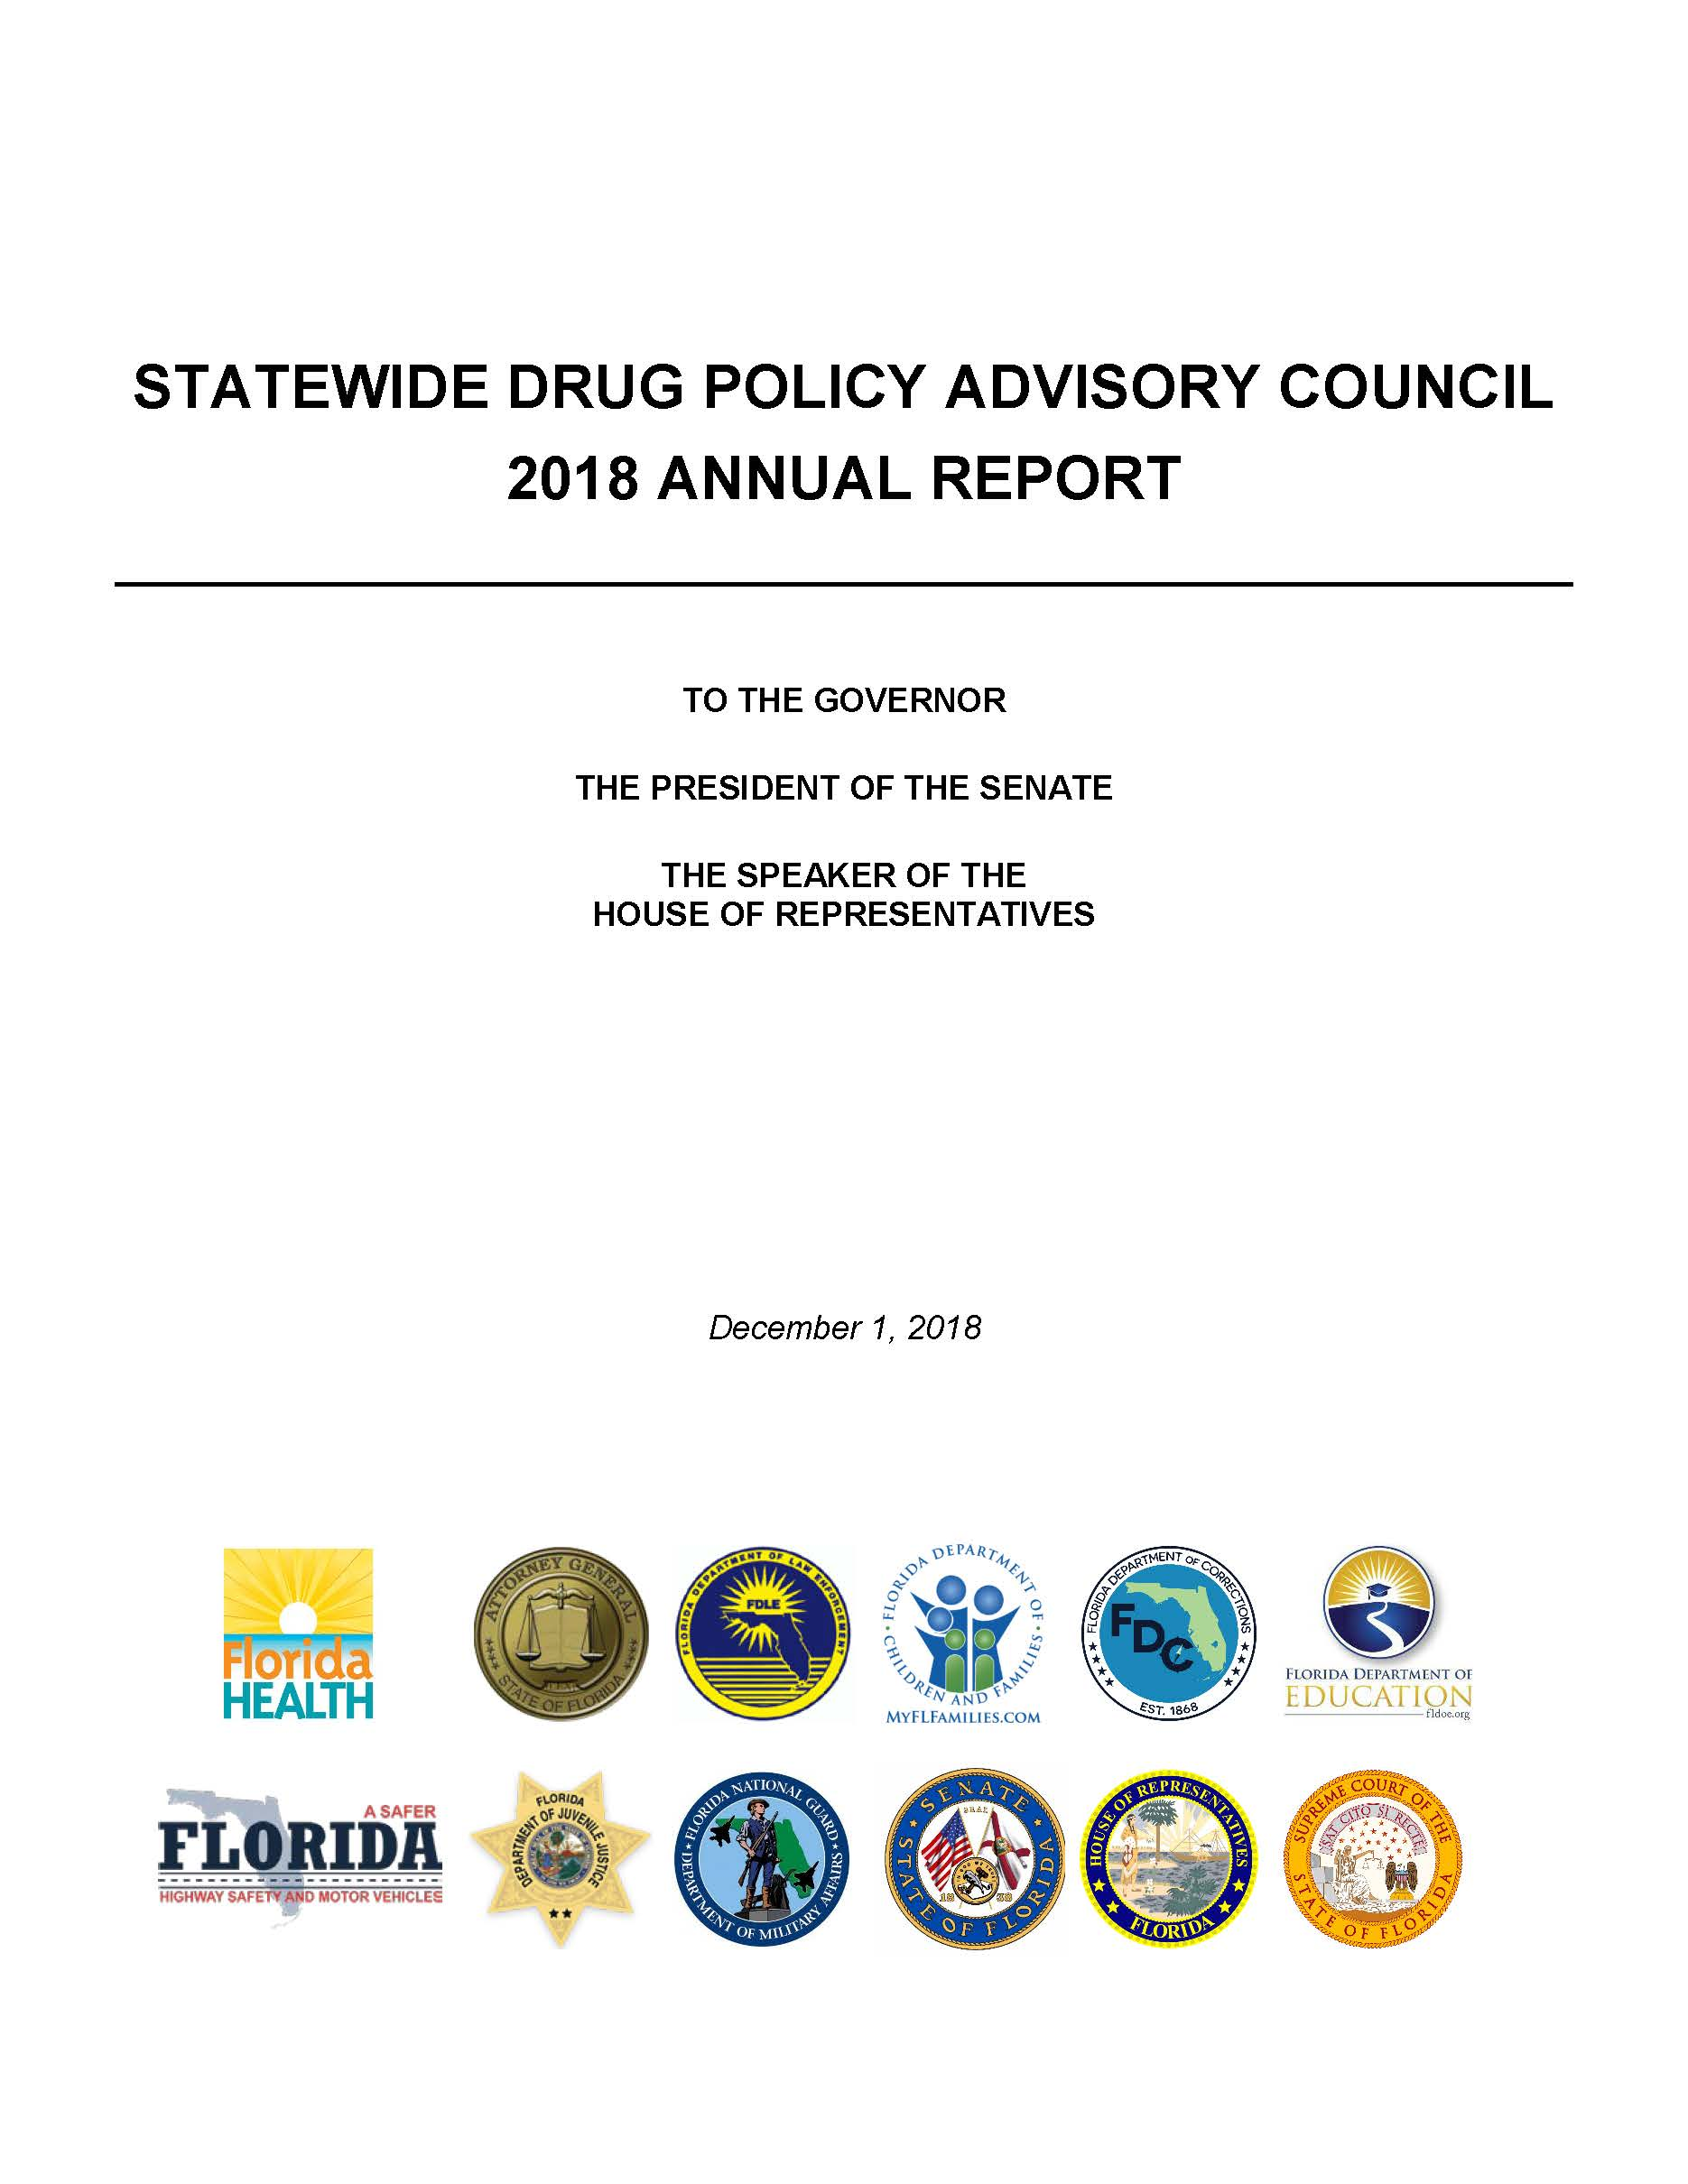 2018 Florida Drug Policy Advisory Council Annual Report - Cover